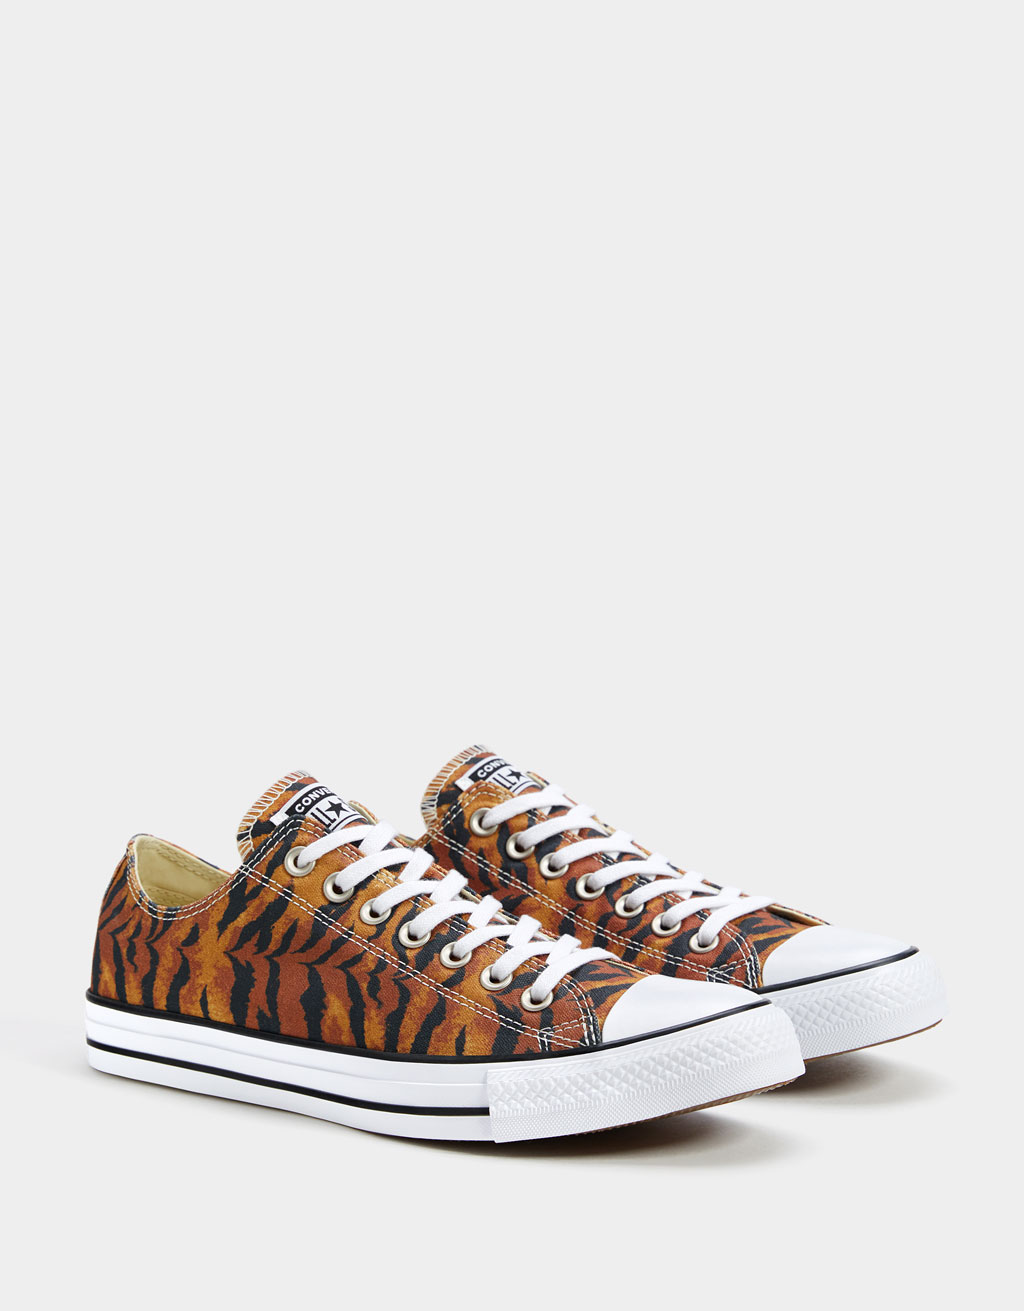 Men's CONVERSE ALL STAR animal print trainers